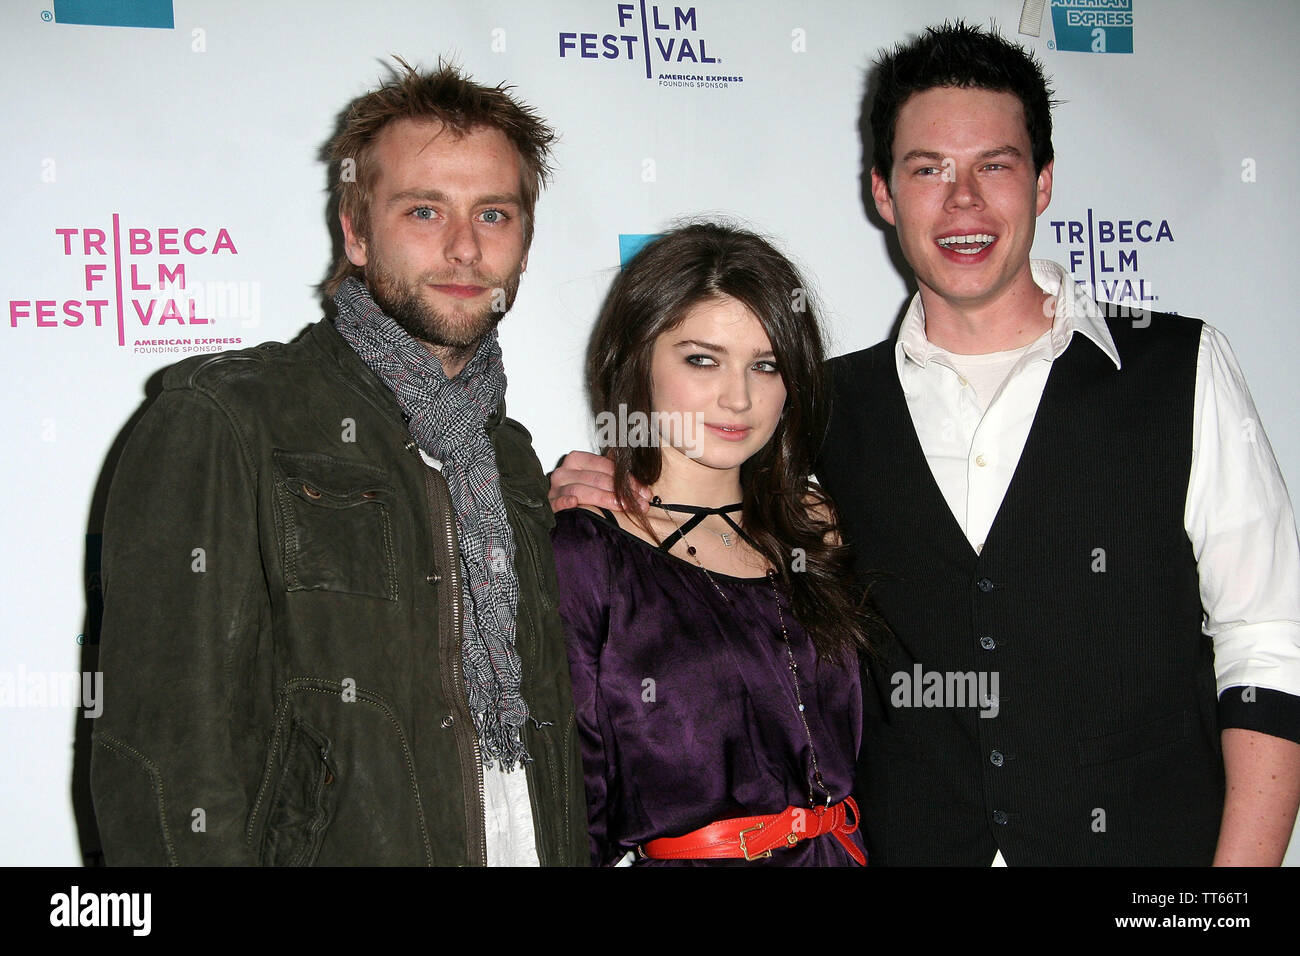 New York, USA. 26 April, 2008. Joe Anderson, Eve Hewson, David P. Emrich at the Premiere Of 'The 27 Club' At The 2008 Tribeca Film Festival at AMC Theater. Credit: Steve Mack/Alamy - Stock Image